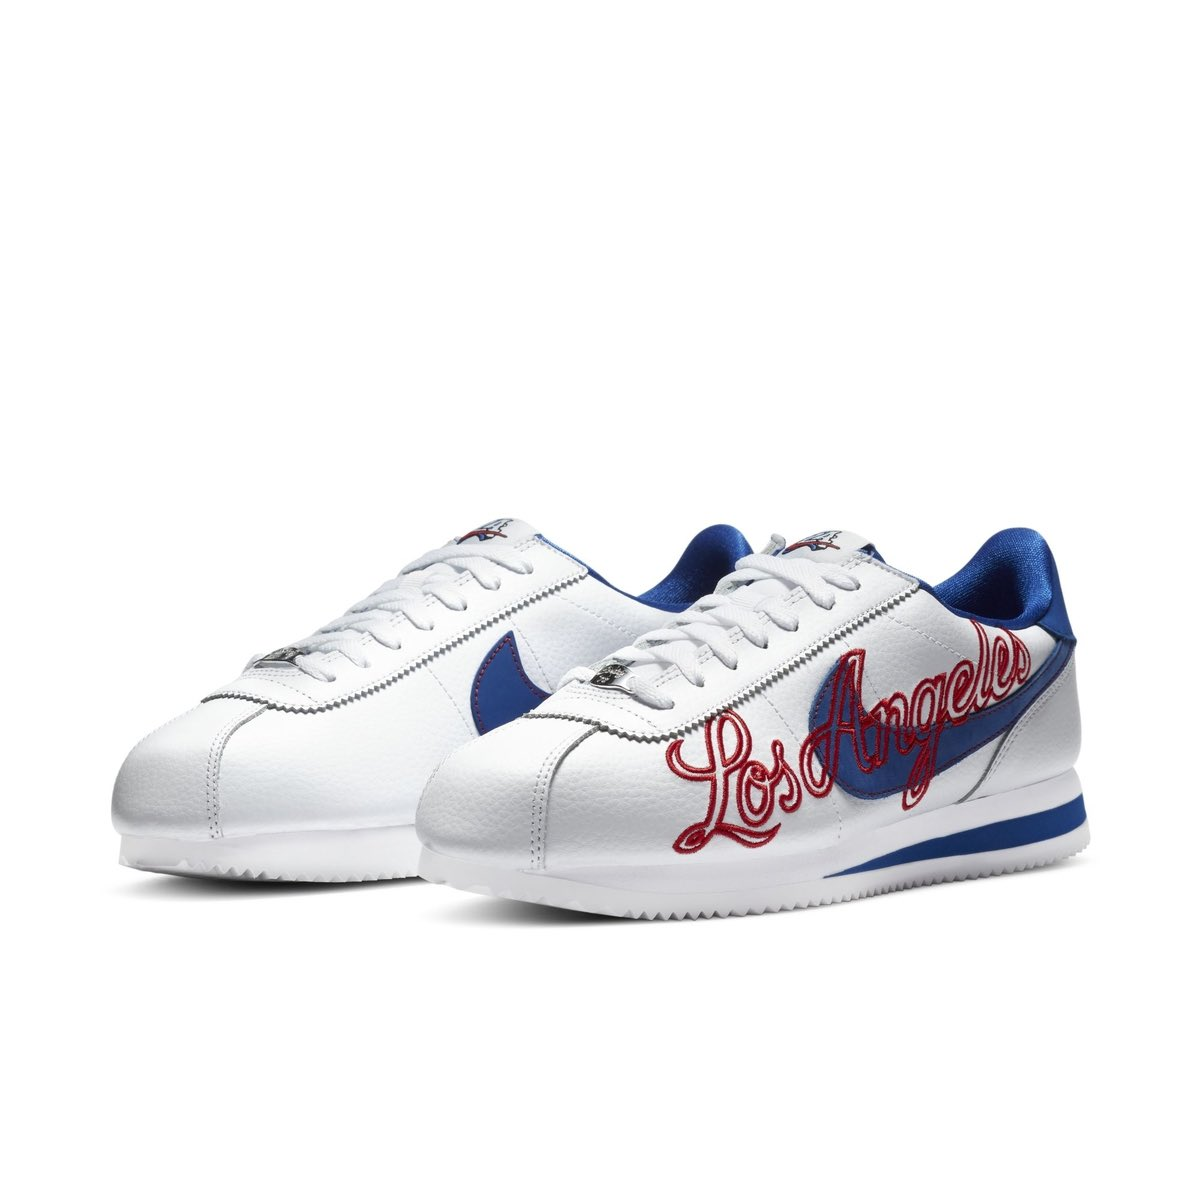 """An official look at an upcoming Nike Cortez """"Los Angeles"""" colorway 👀🔥"""